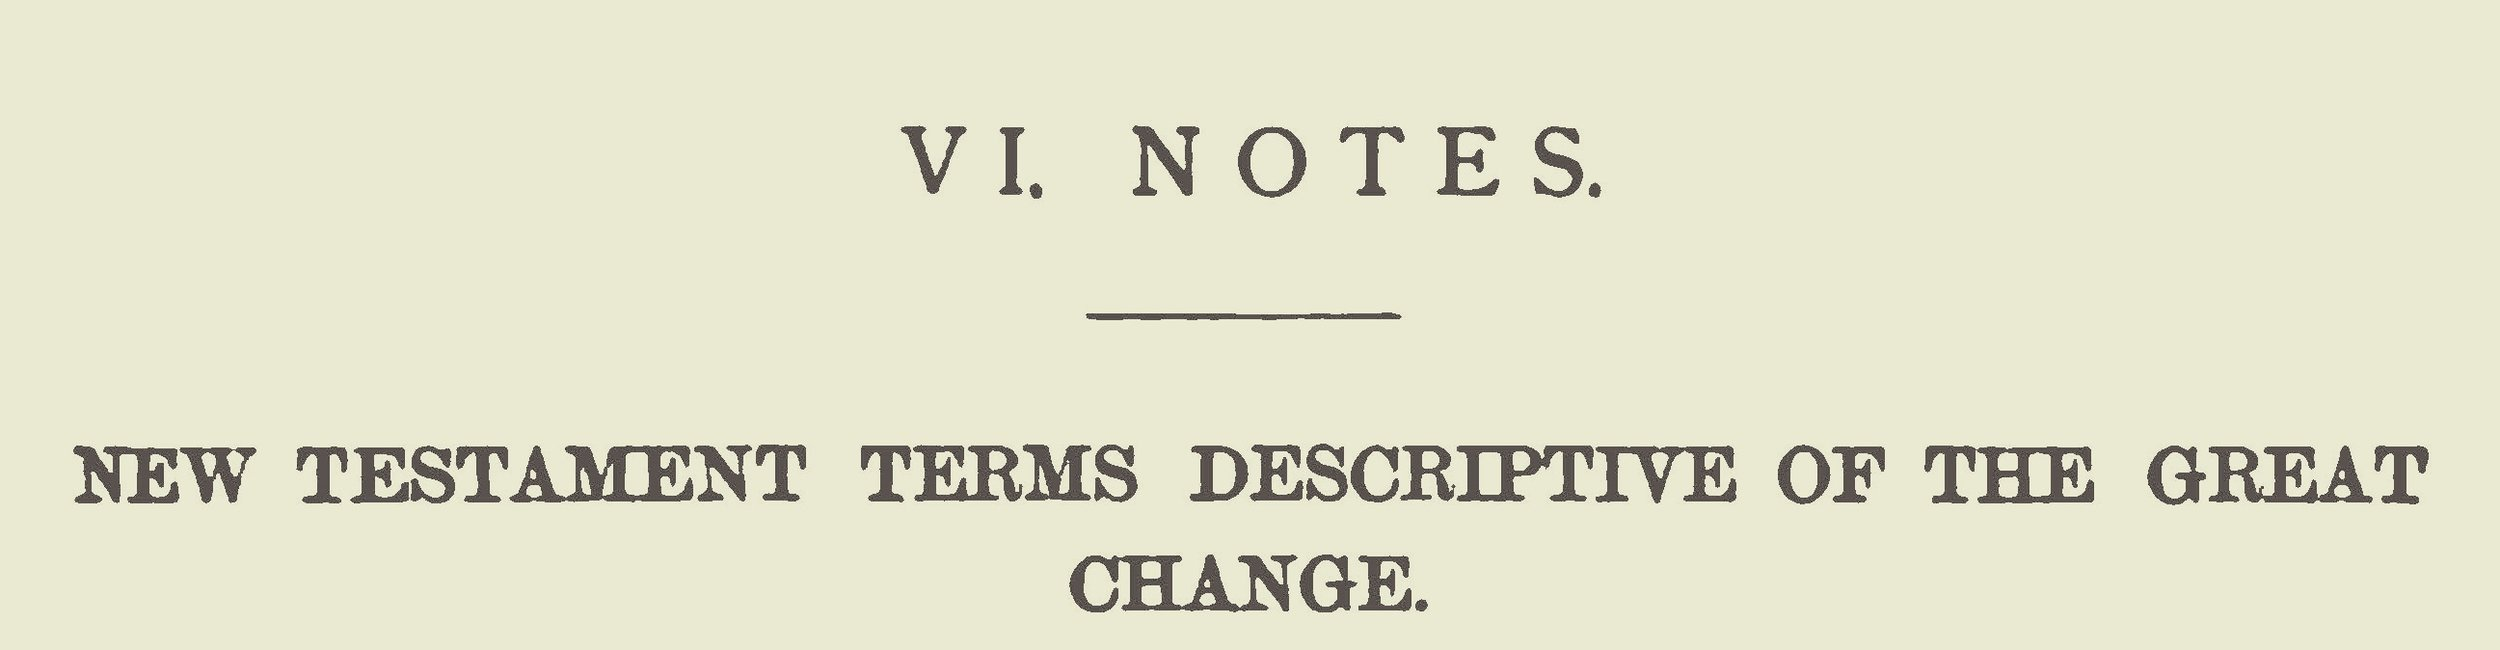 Warfield, Benjamin Breckinridge, New Testament Terms Descriptive of the Great Change Title Page.jpg